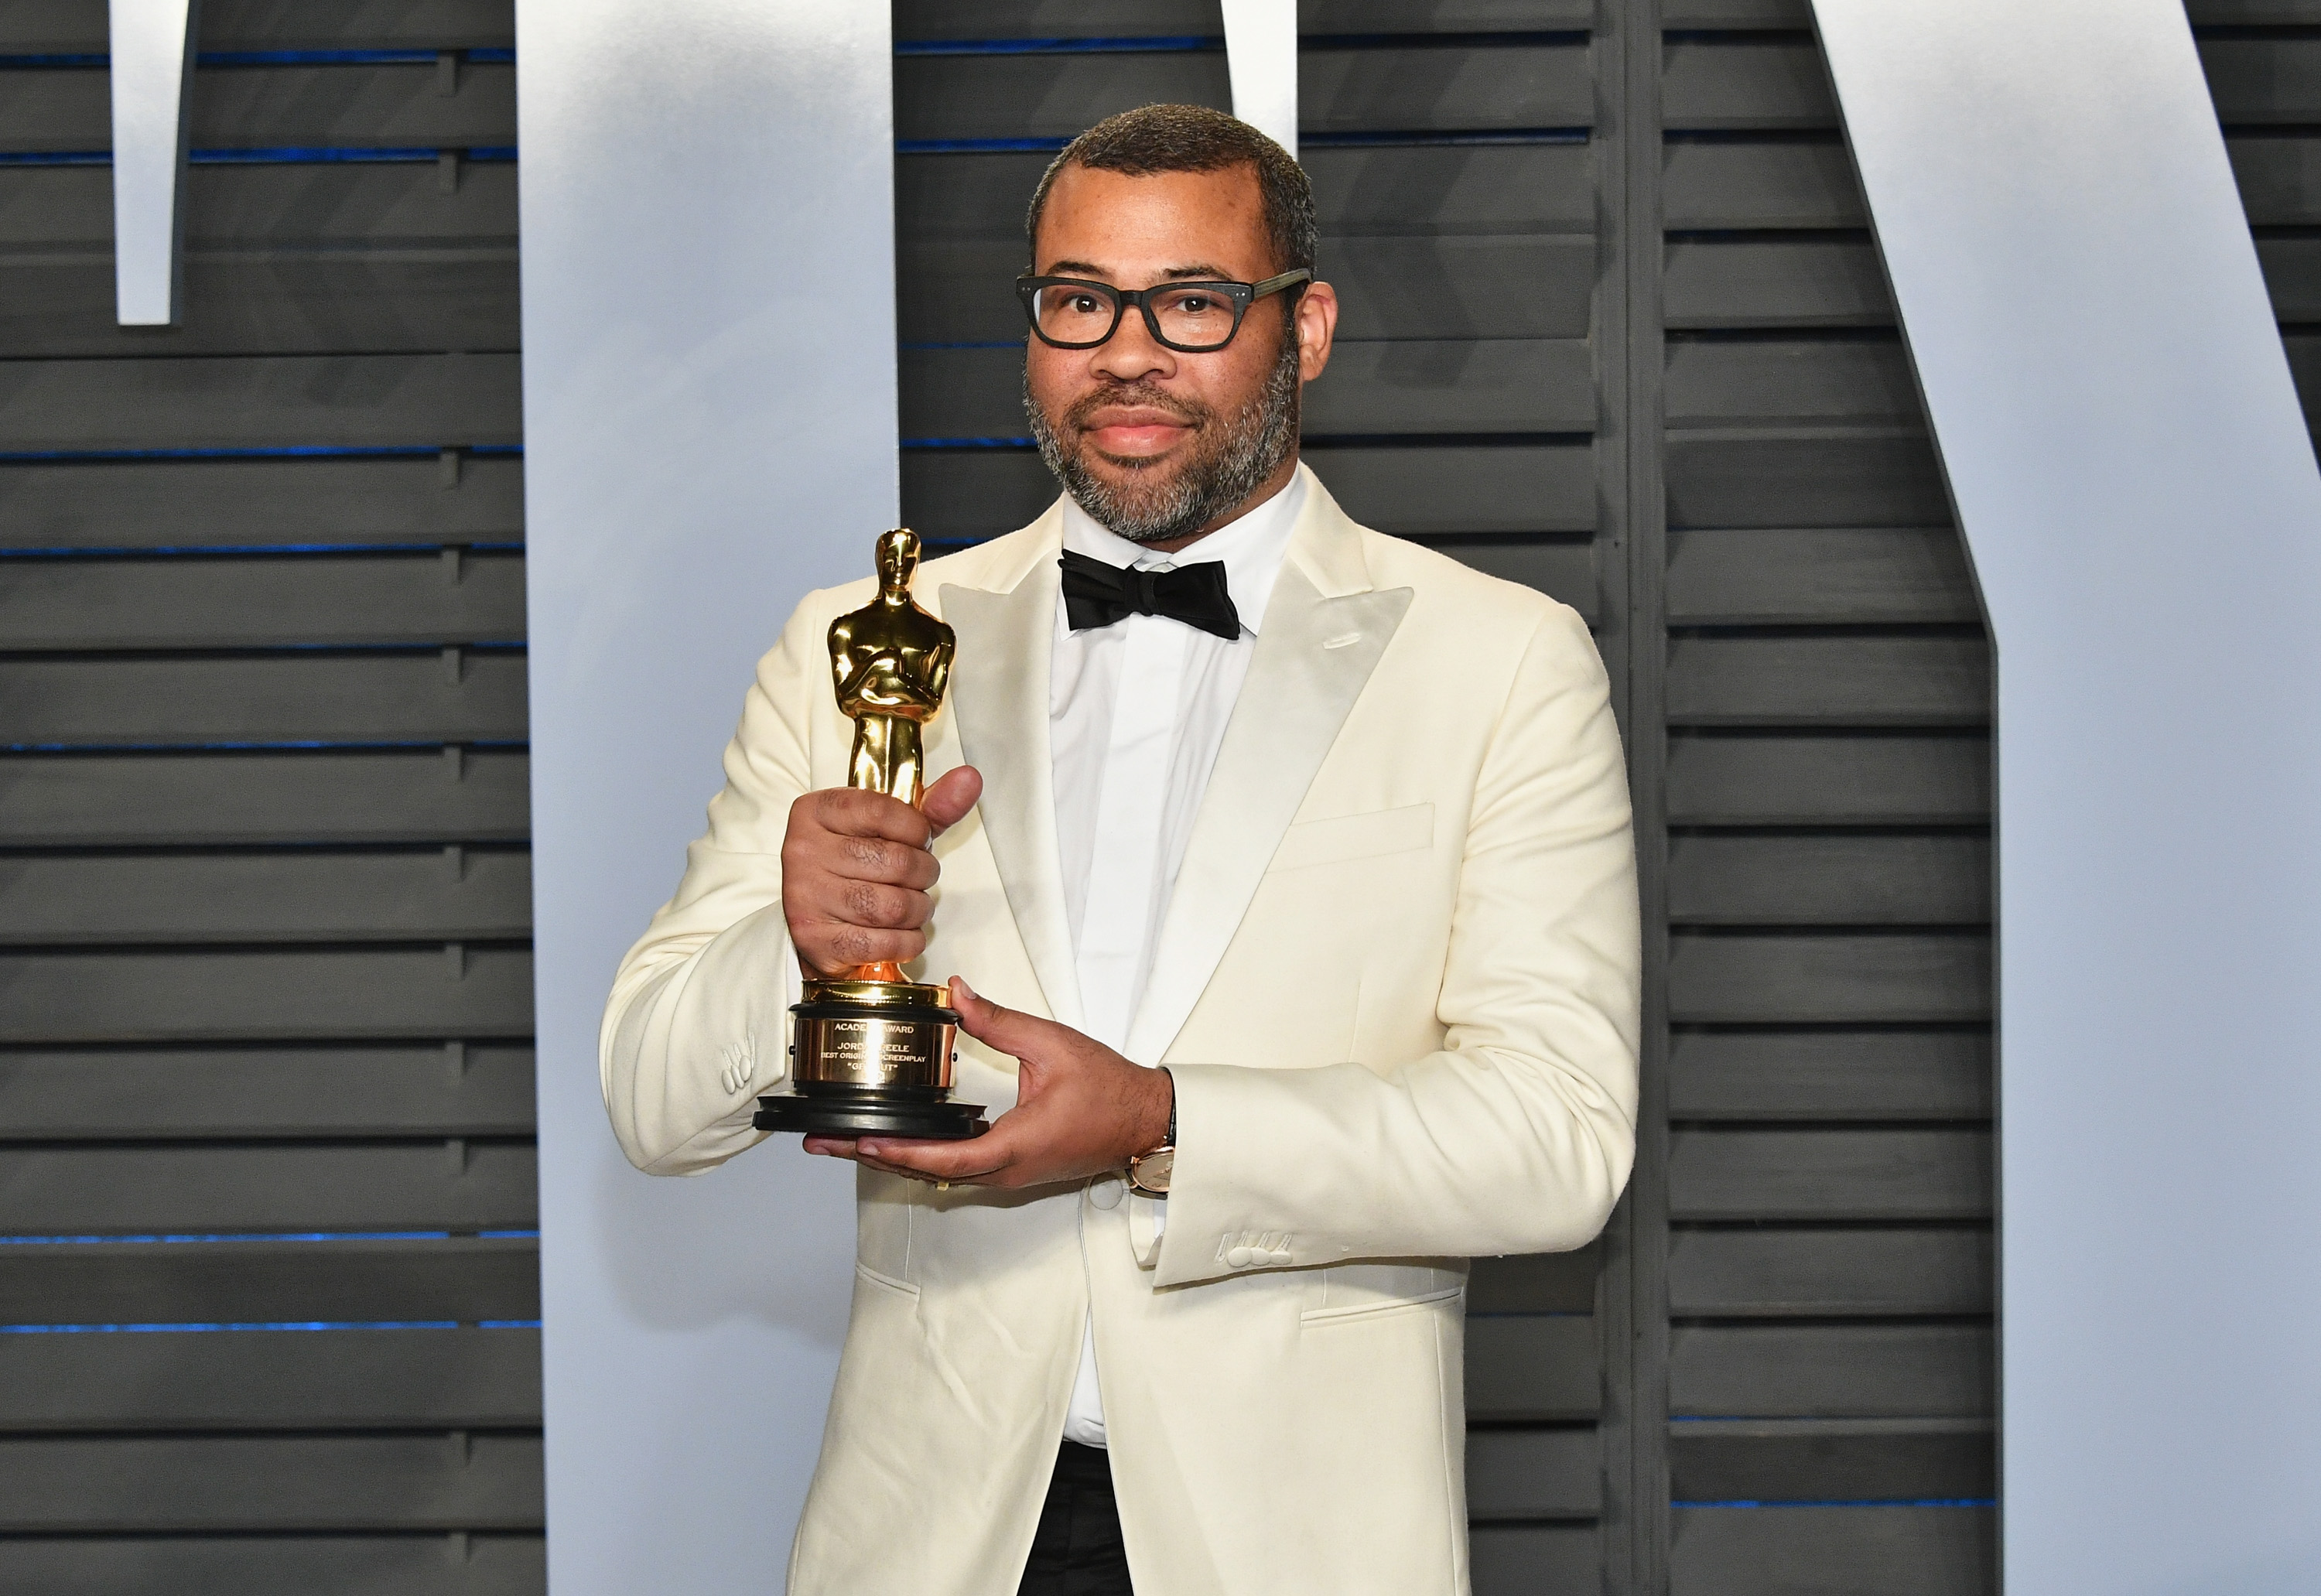 Jordan Peele attends the 2018 Vanity Fair Oscar Party hosted by Radhika Jones at Wallis Annenberg Center for the Performing Arts on March 4, 2018 in Beverly Hills, California. (Source: Getty Images)